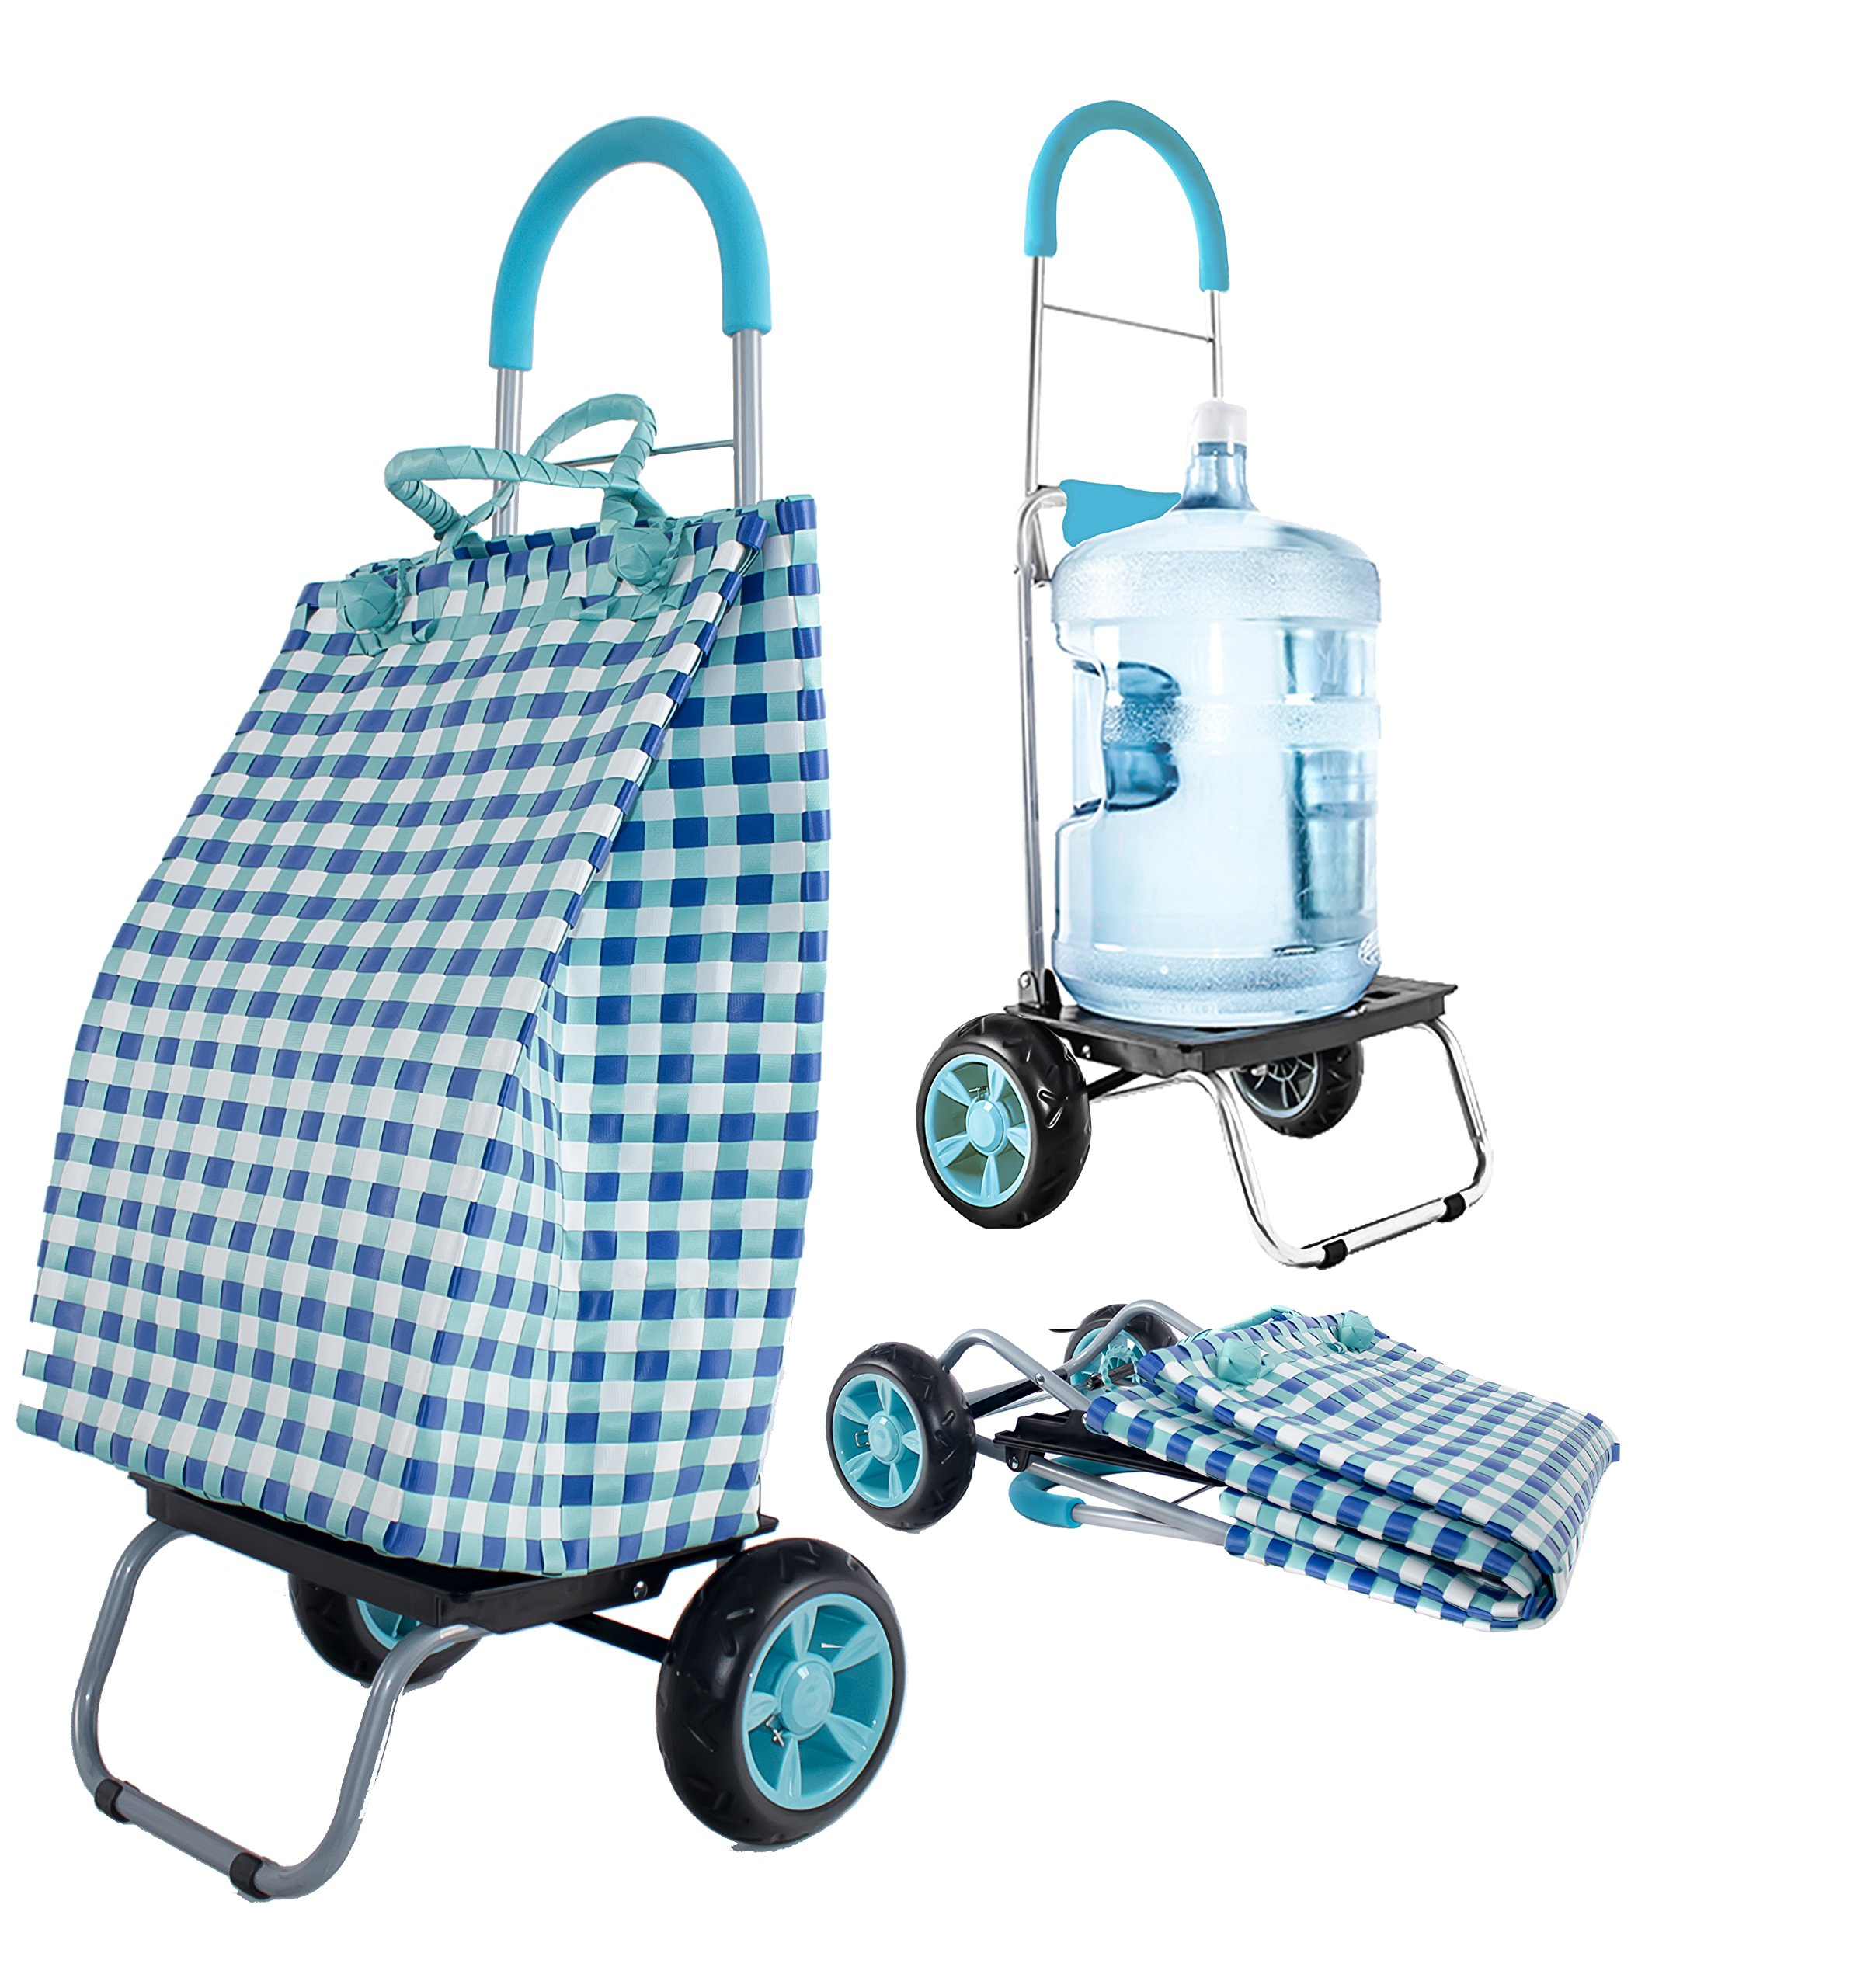 dbest products Trolley Dolly Basket Weave Tote, Blue Shopping Grocery Foldable Cart Picnic Beach by dbest products (Image #1)